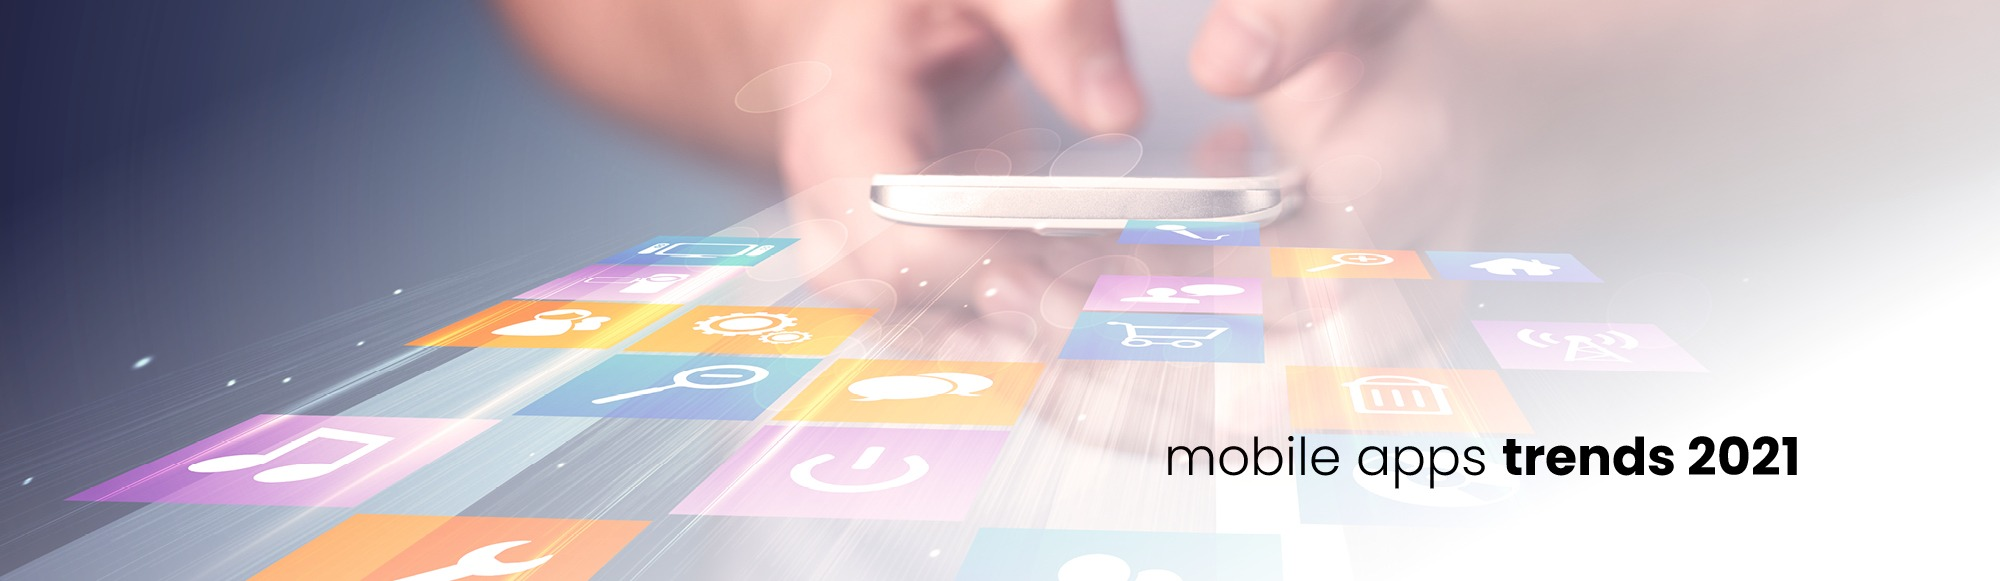 Mobile Apps Trends For 2021